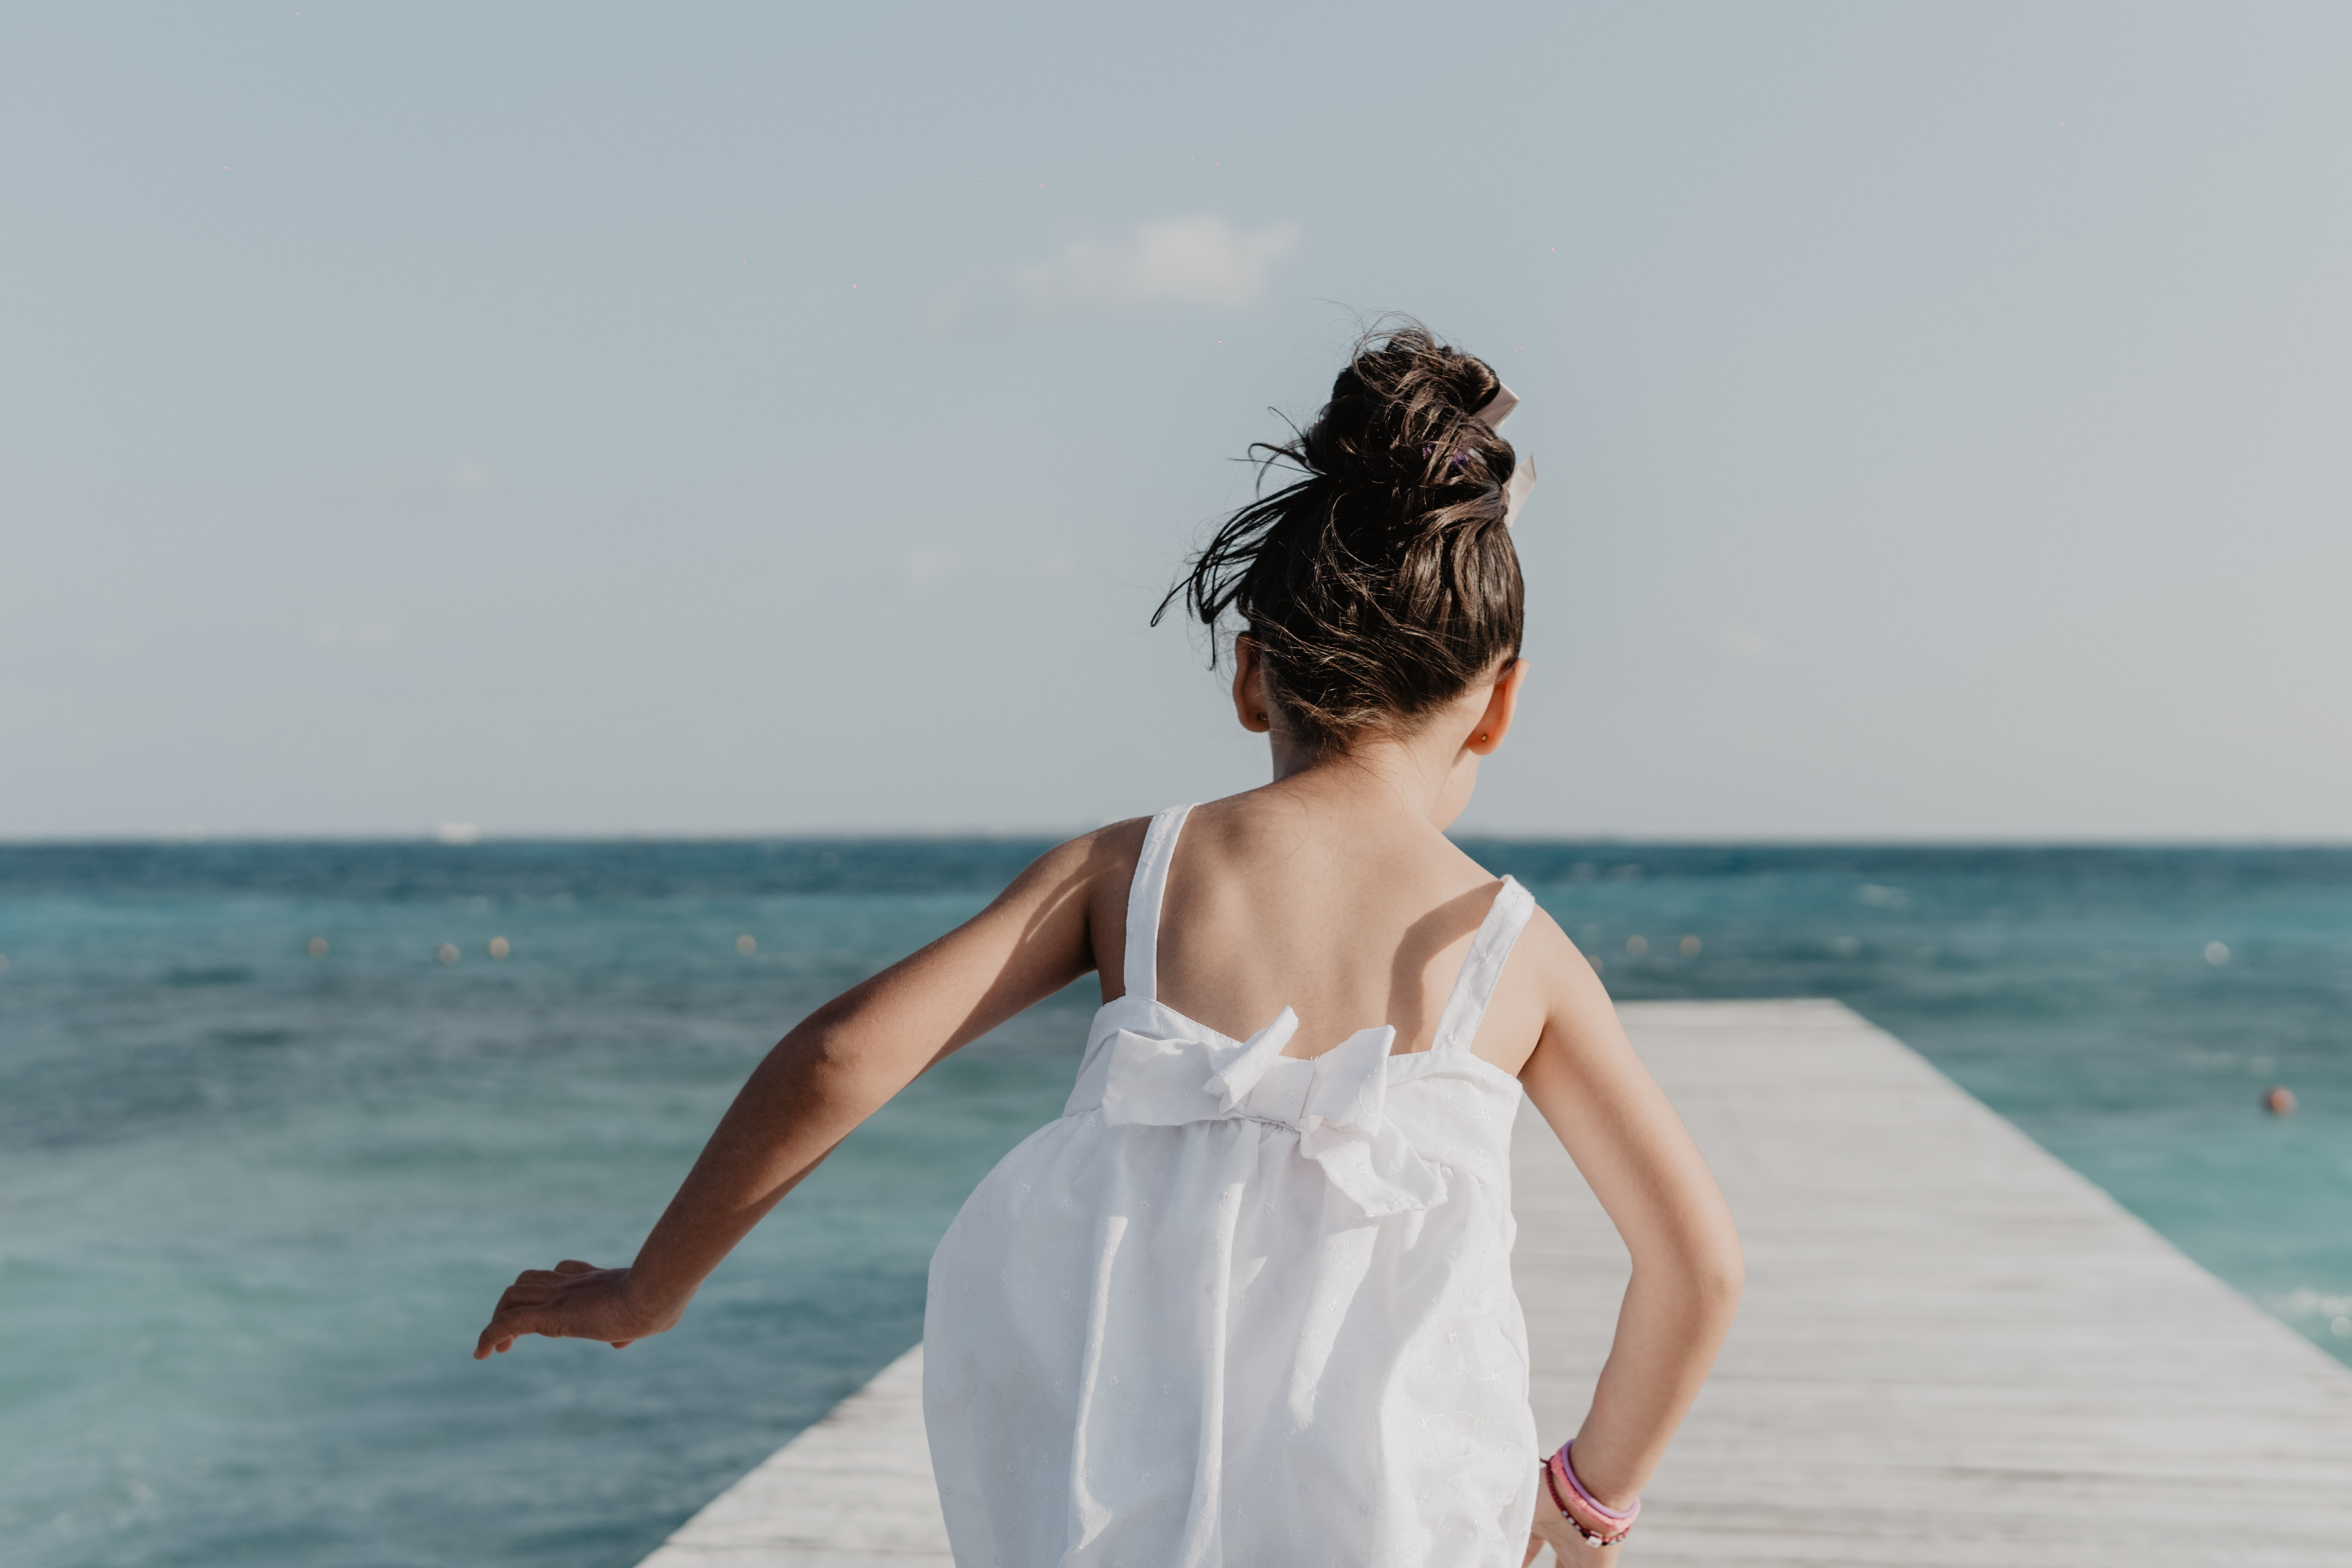 girl running on dock under white sky